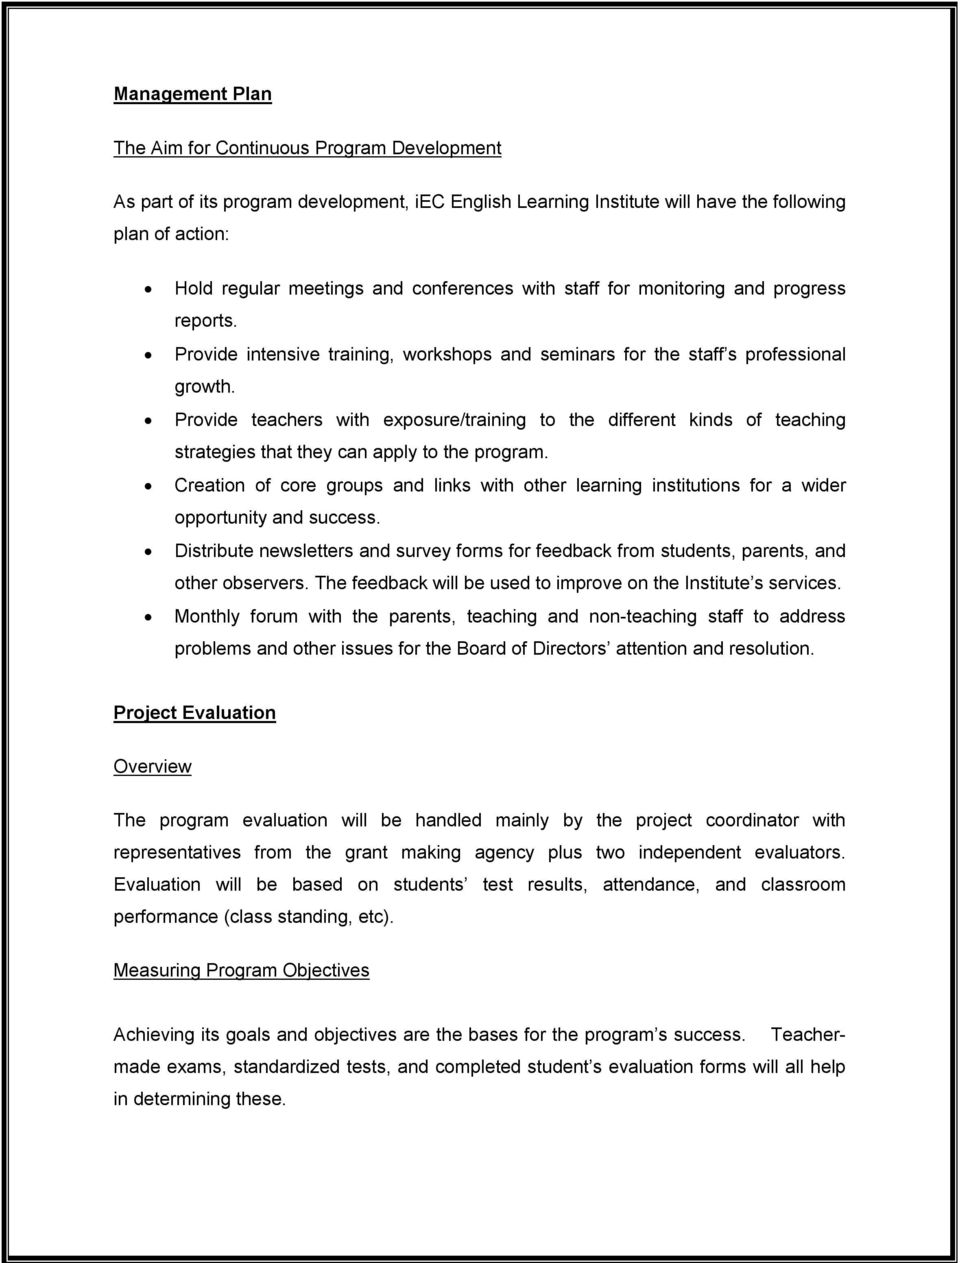 Provide teachers with exposure/training to the different kinds of teaching strategies that they can apply to the program.